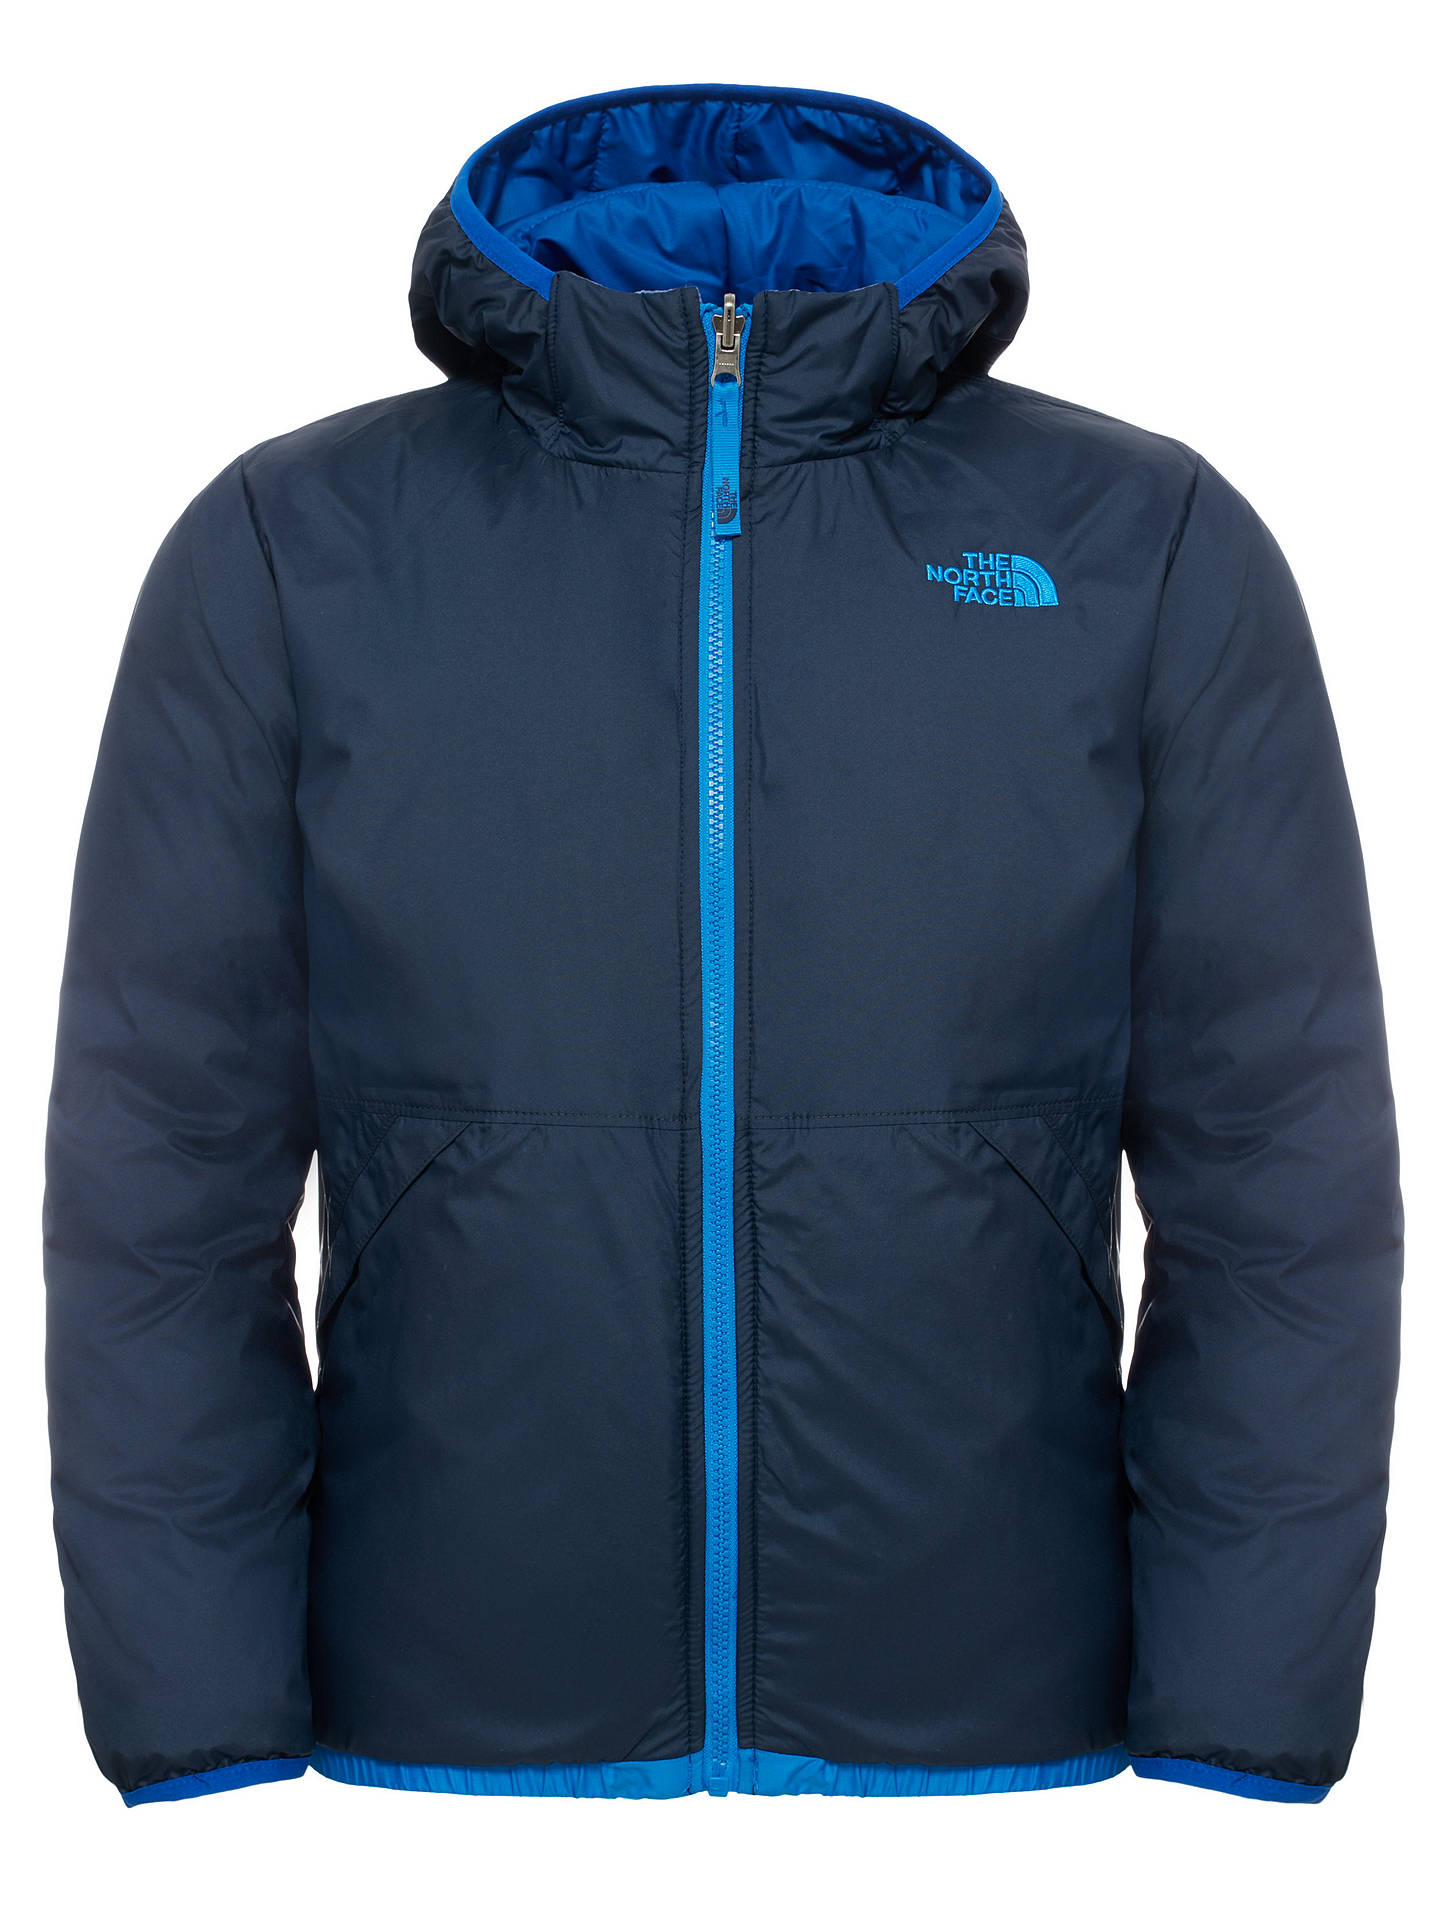 477698d877 ... BuyThe North Face Boys  Moondoggy Reversible Water Resistant Jacket